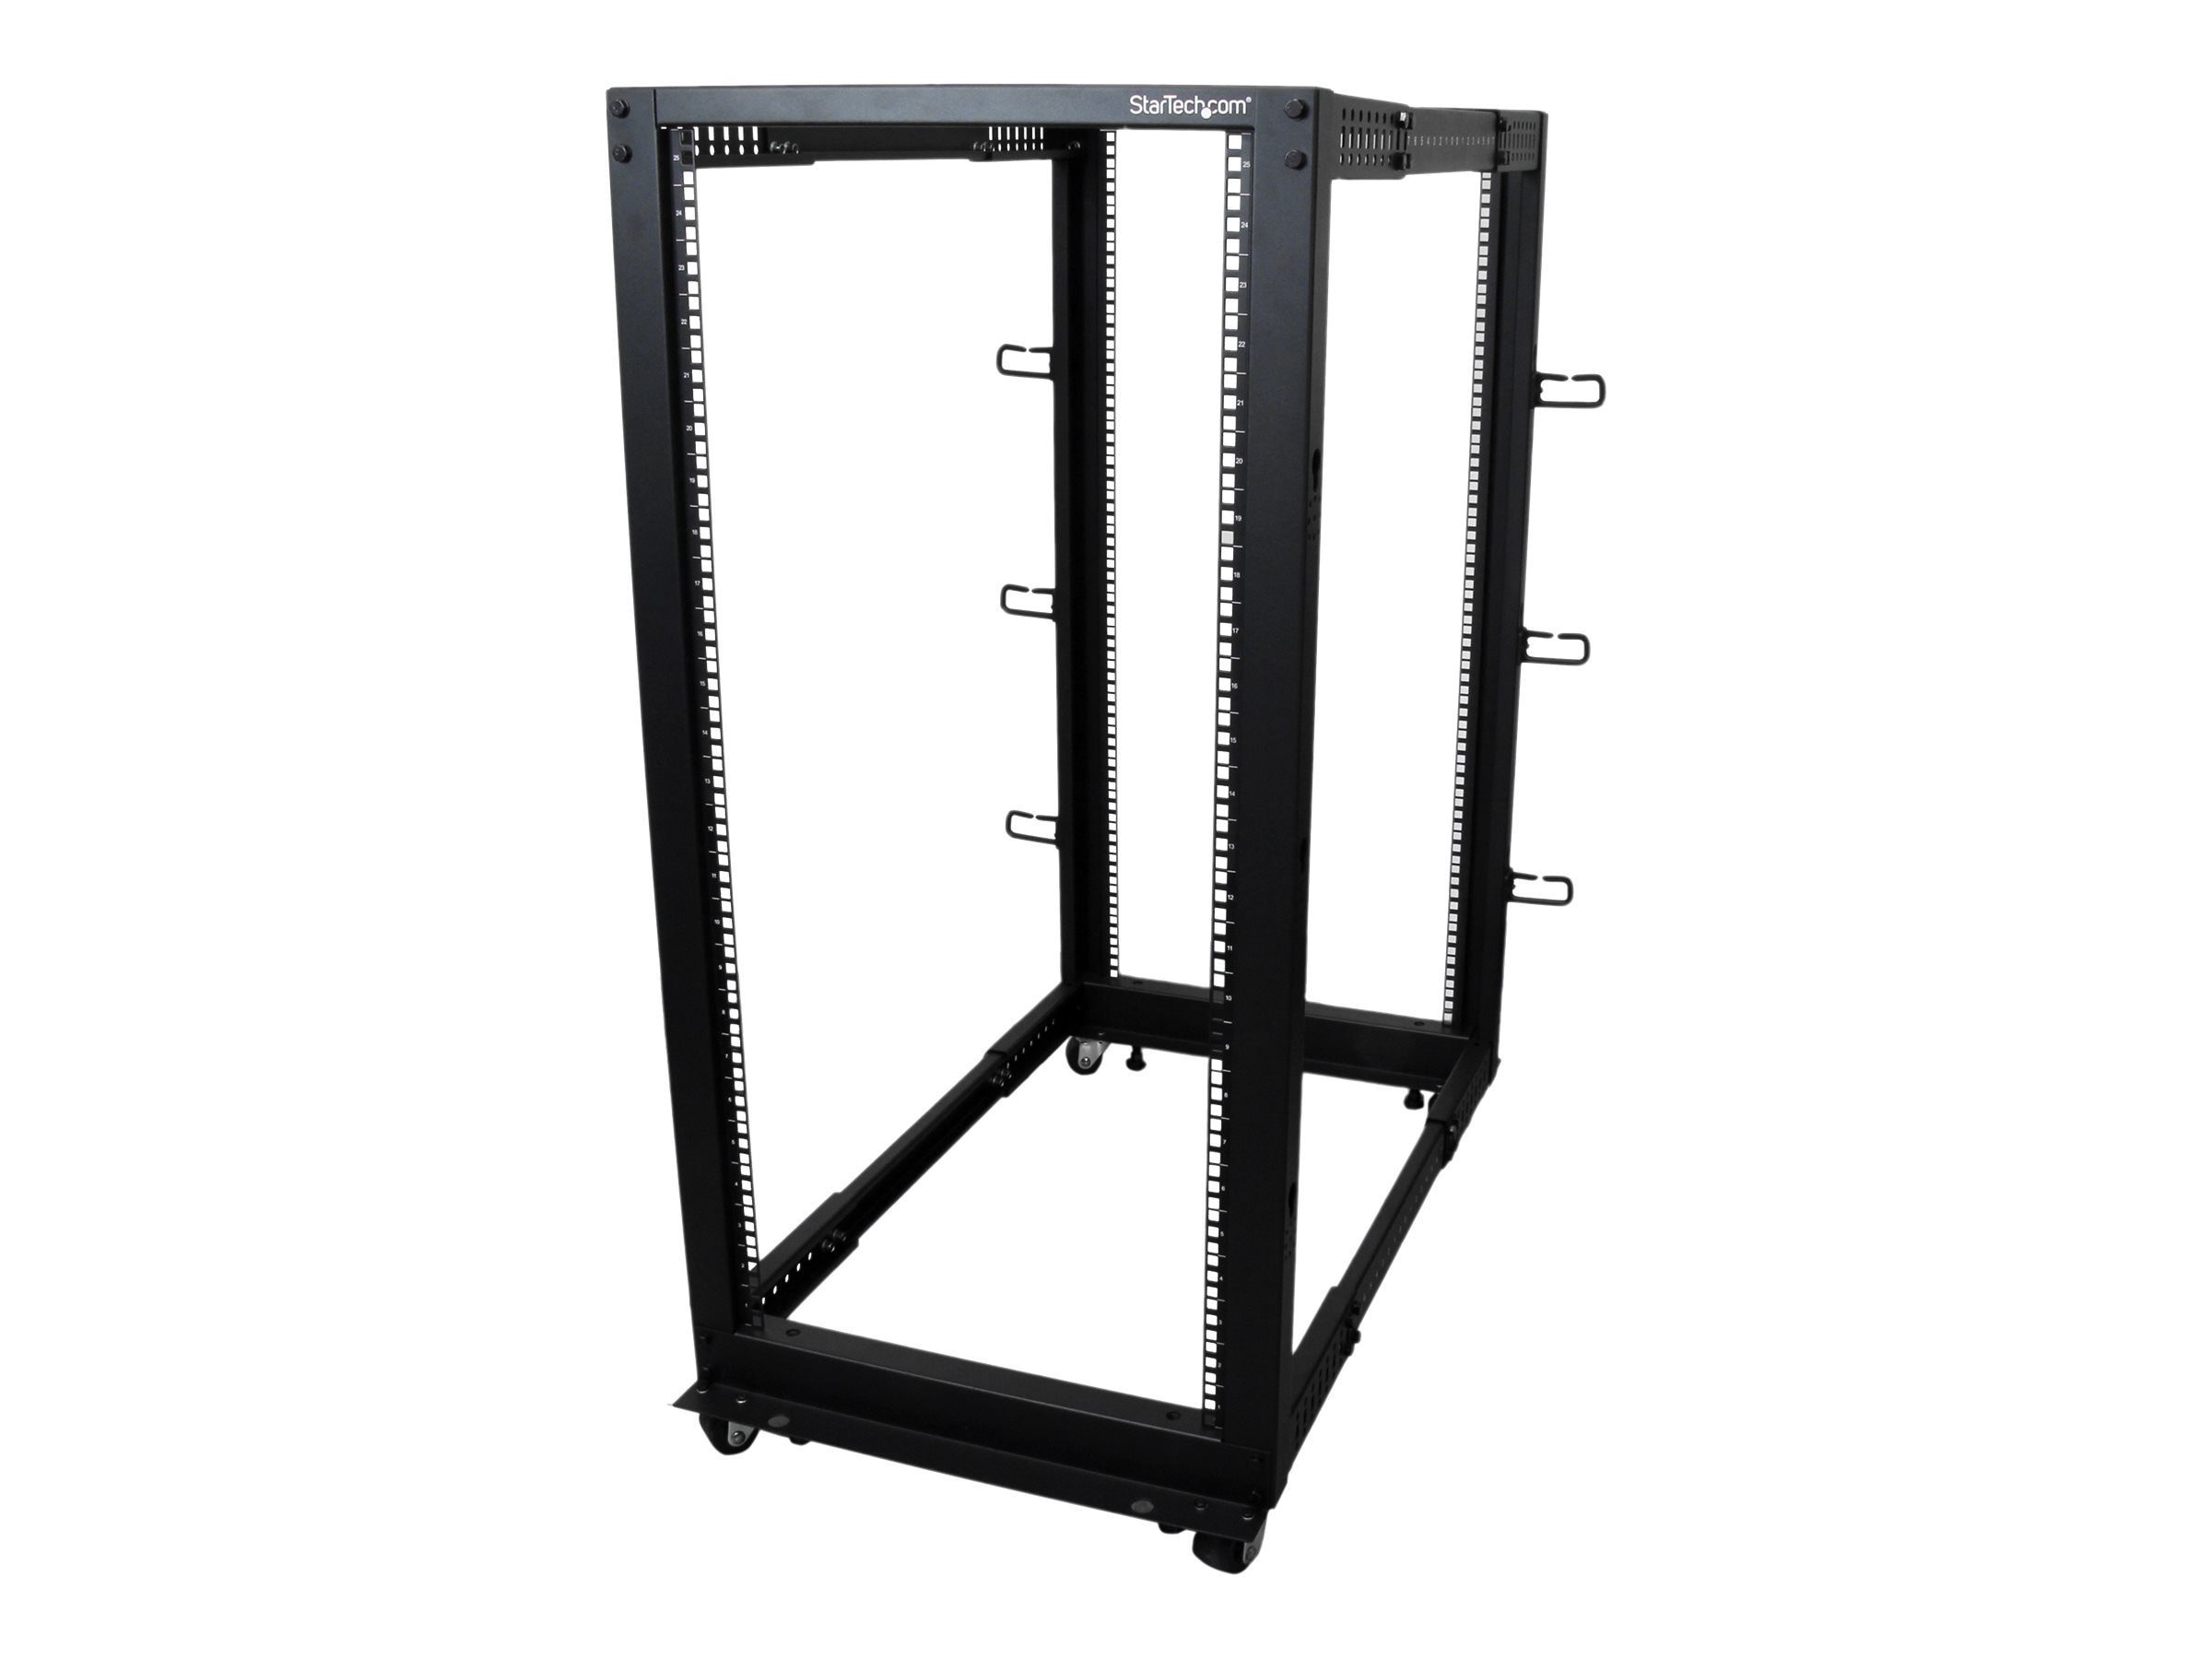 StarTech.com 25U Adjustable Depth Open Frame 4 Post Server Rack with Casters Levelers and Cable Management Hooks